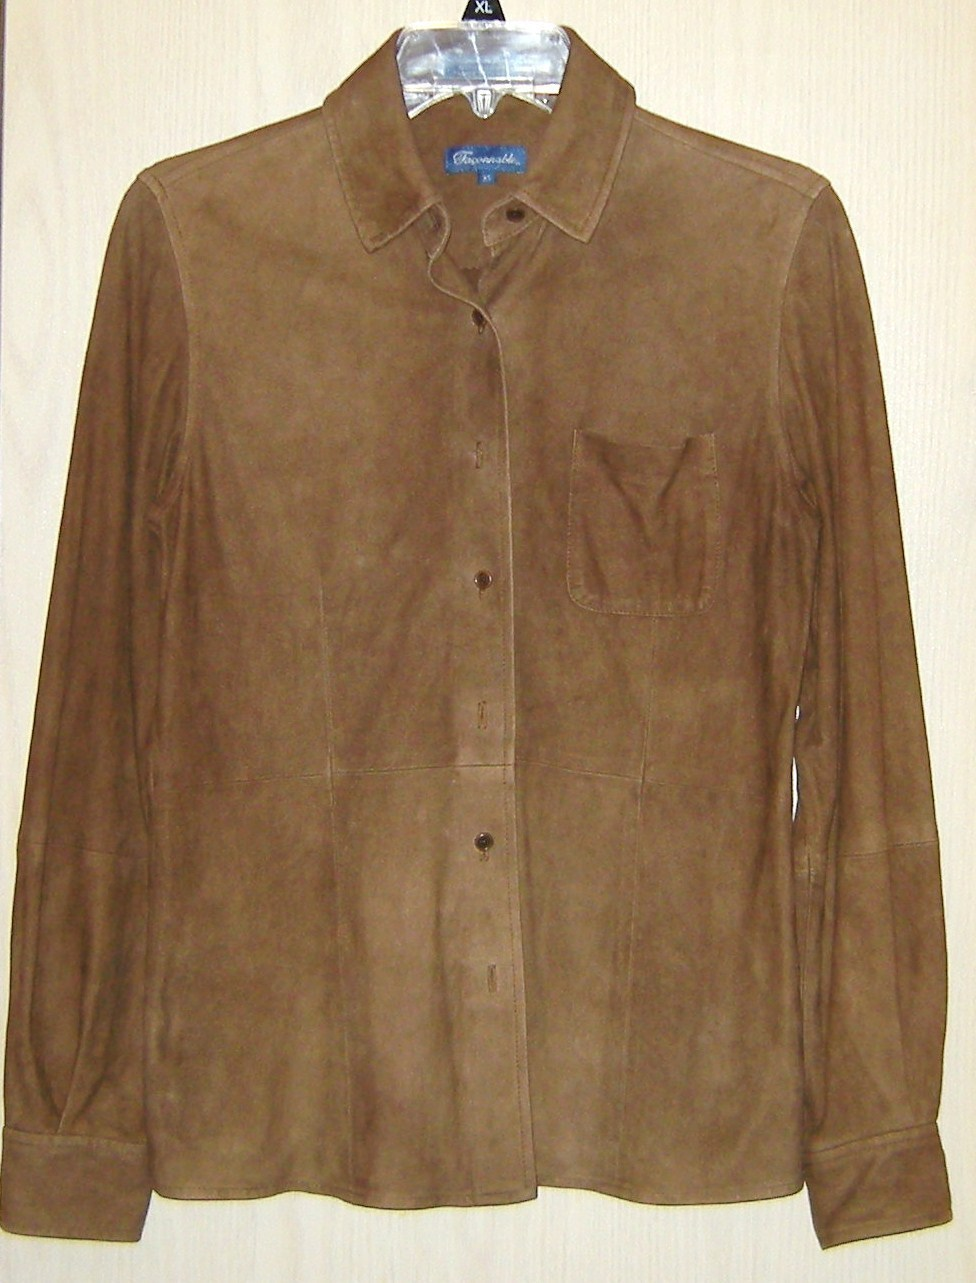 Faconnable Brown Goatskin Suede Leather Womens Soft Jacket  Shirt